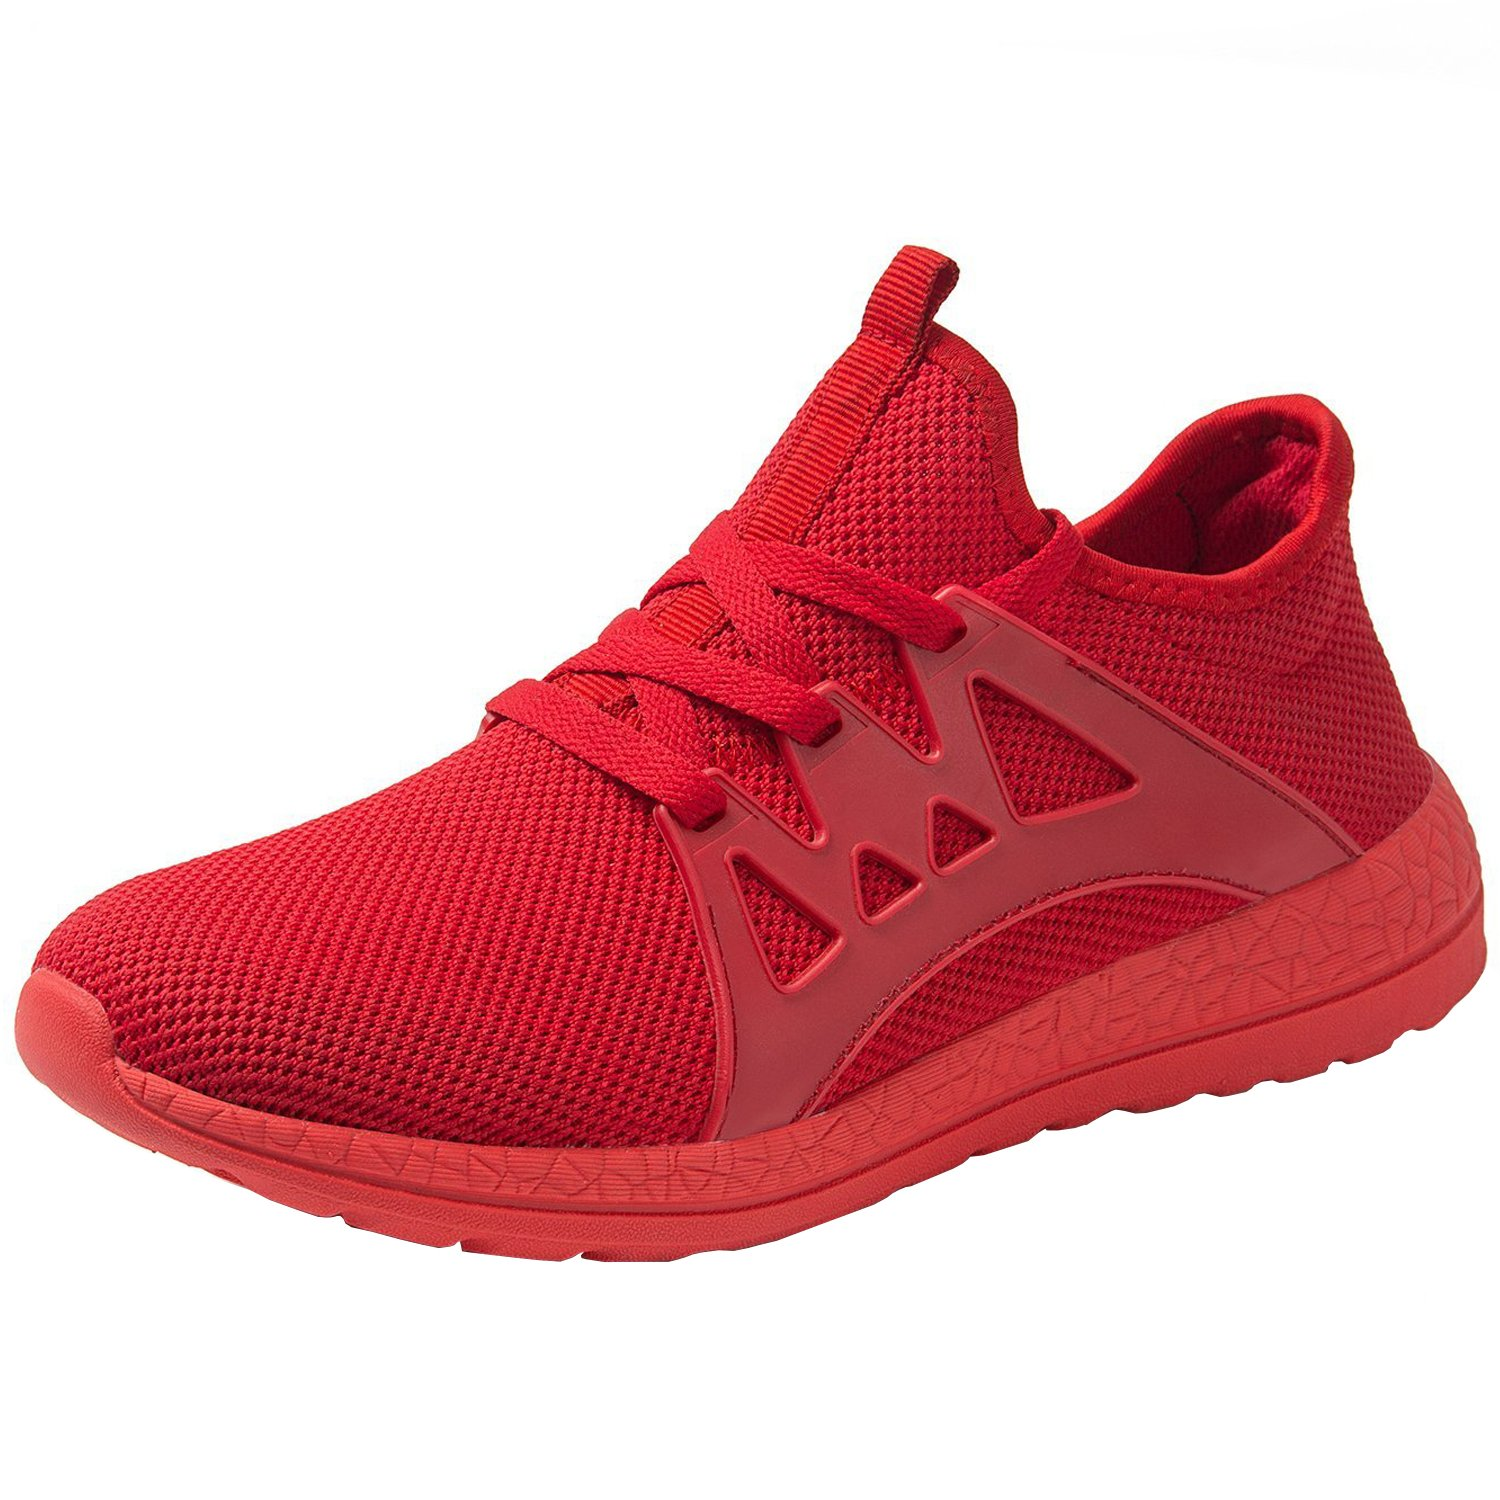 RomenSi Men's Mesh Lightweight Running Shoes Casual Breathable Athletic Tennis Walking Sneaker US6.5-13.5 7 M US|Red